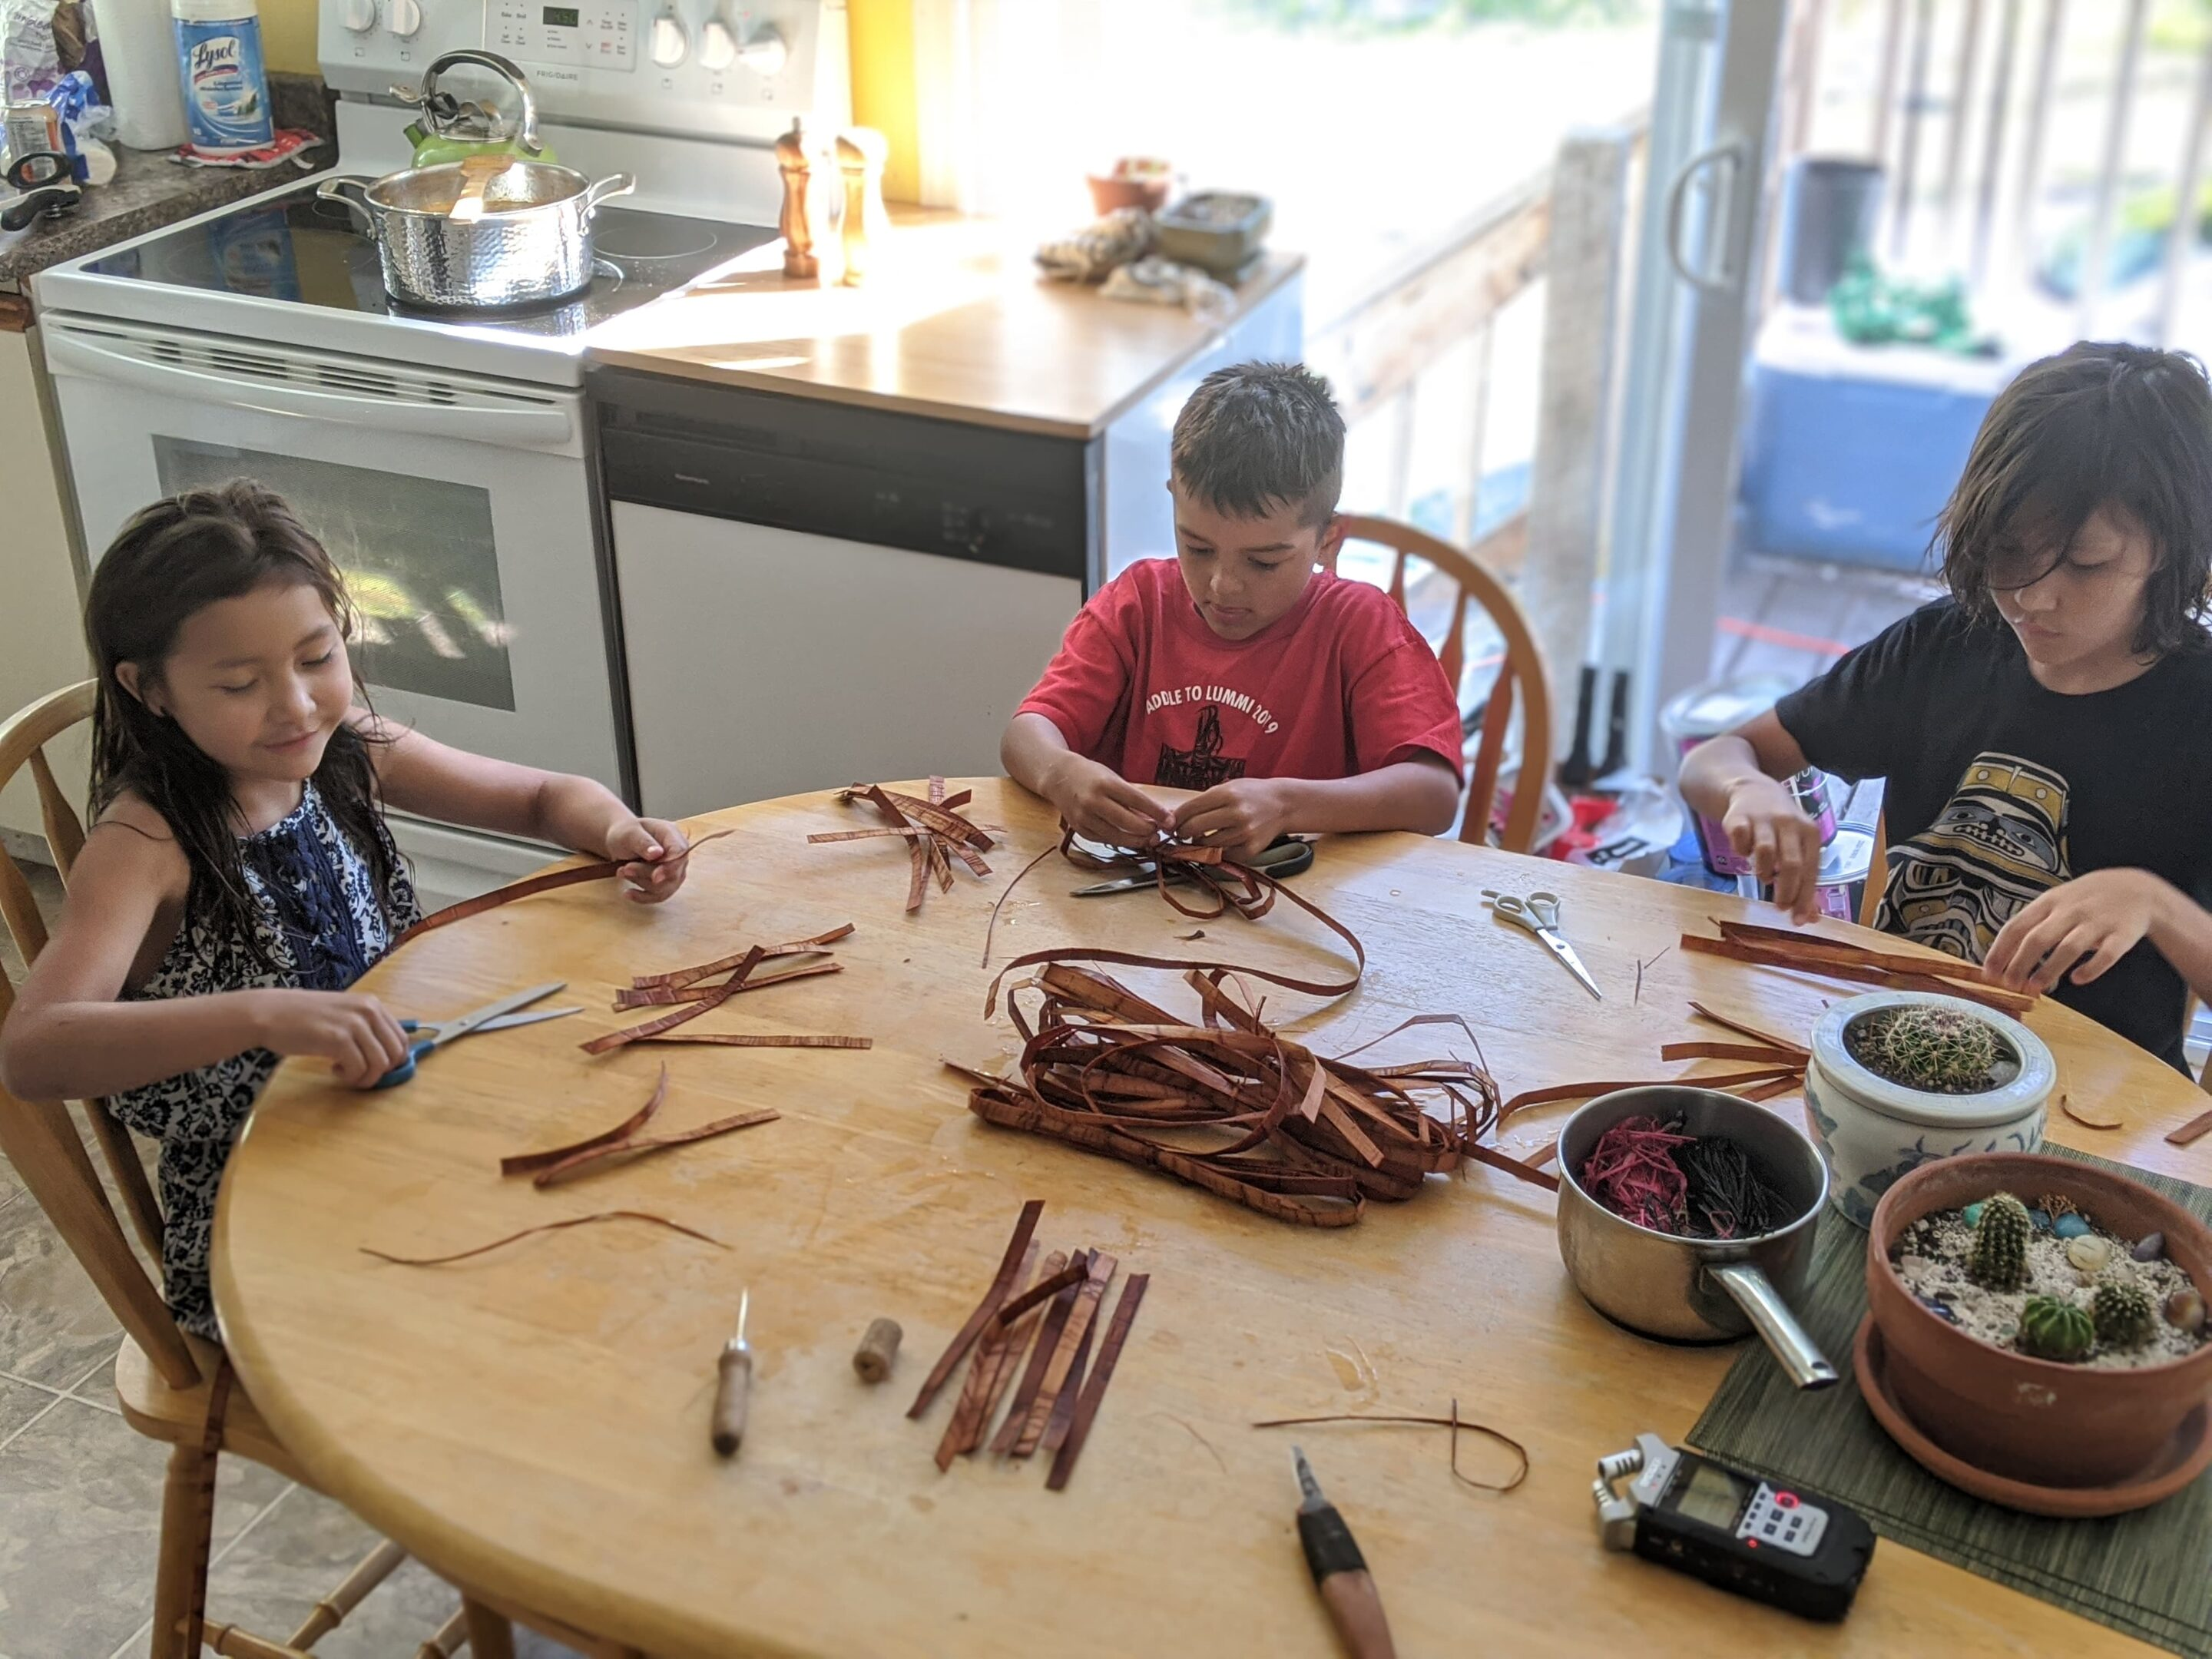 Tla'amin weaver Sosan Blaney teaching a class to youth with soundscapes of Indigenous artists